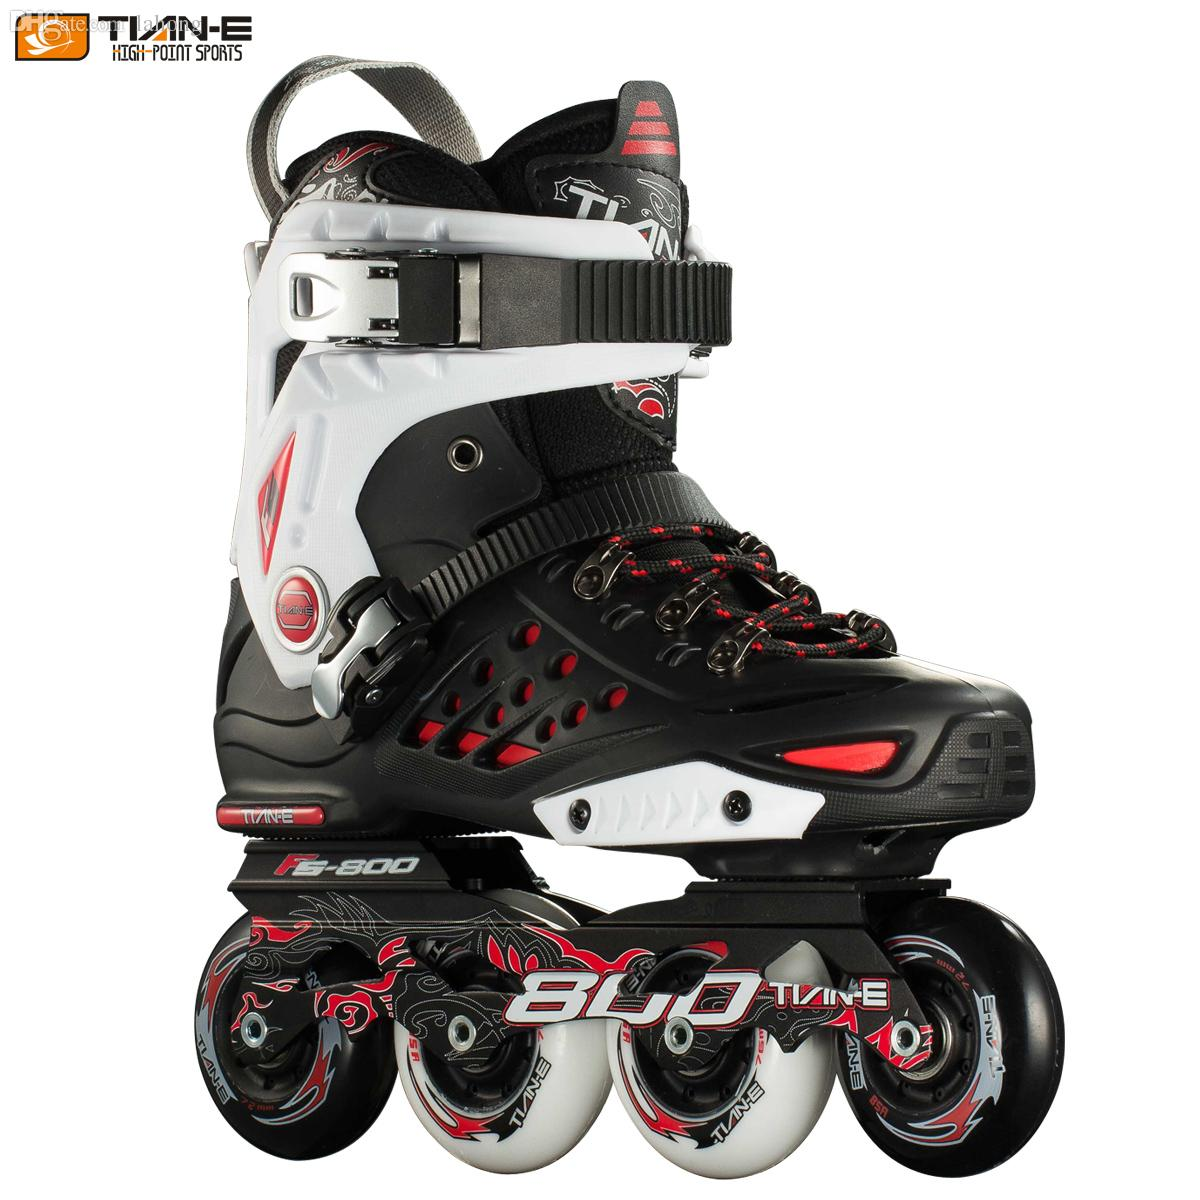 Roller skating shoes price in pakistan - 34